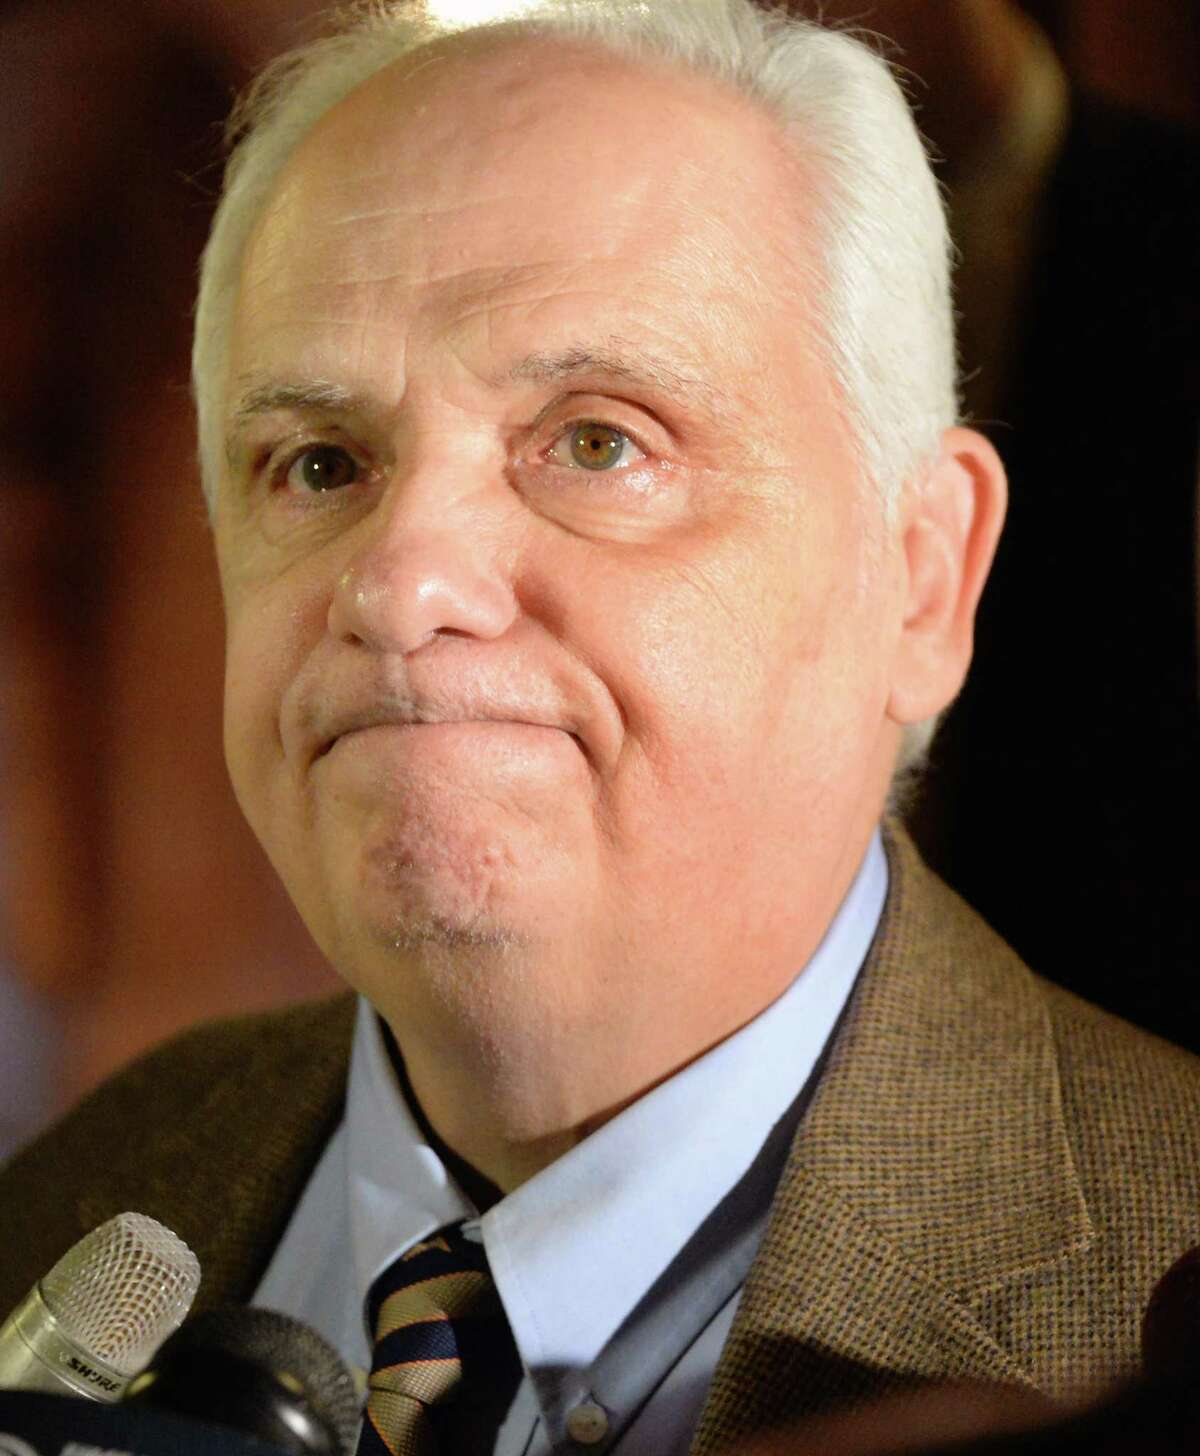 NYS Assemblyman Joseph Lentol speaks with reporters outside the Assembly Chambers Tuesday Jan. 27, 2015. (John Carl D'Annibale / Times Union)